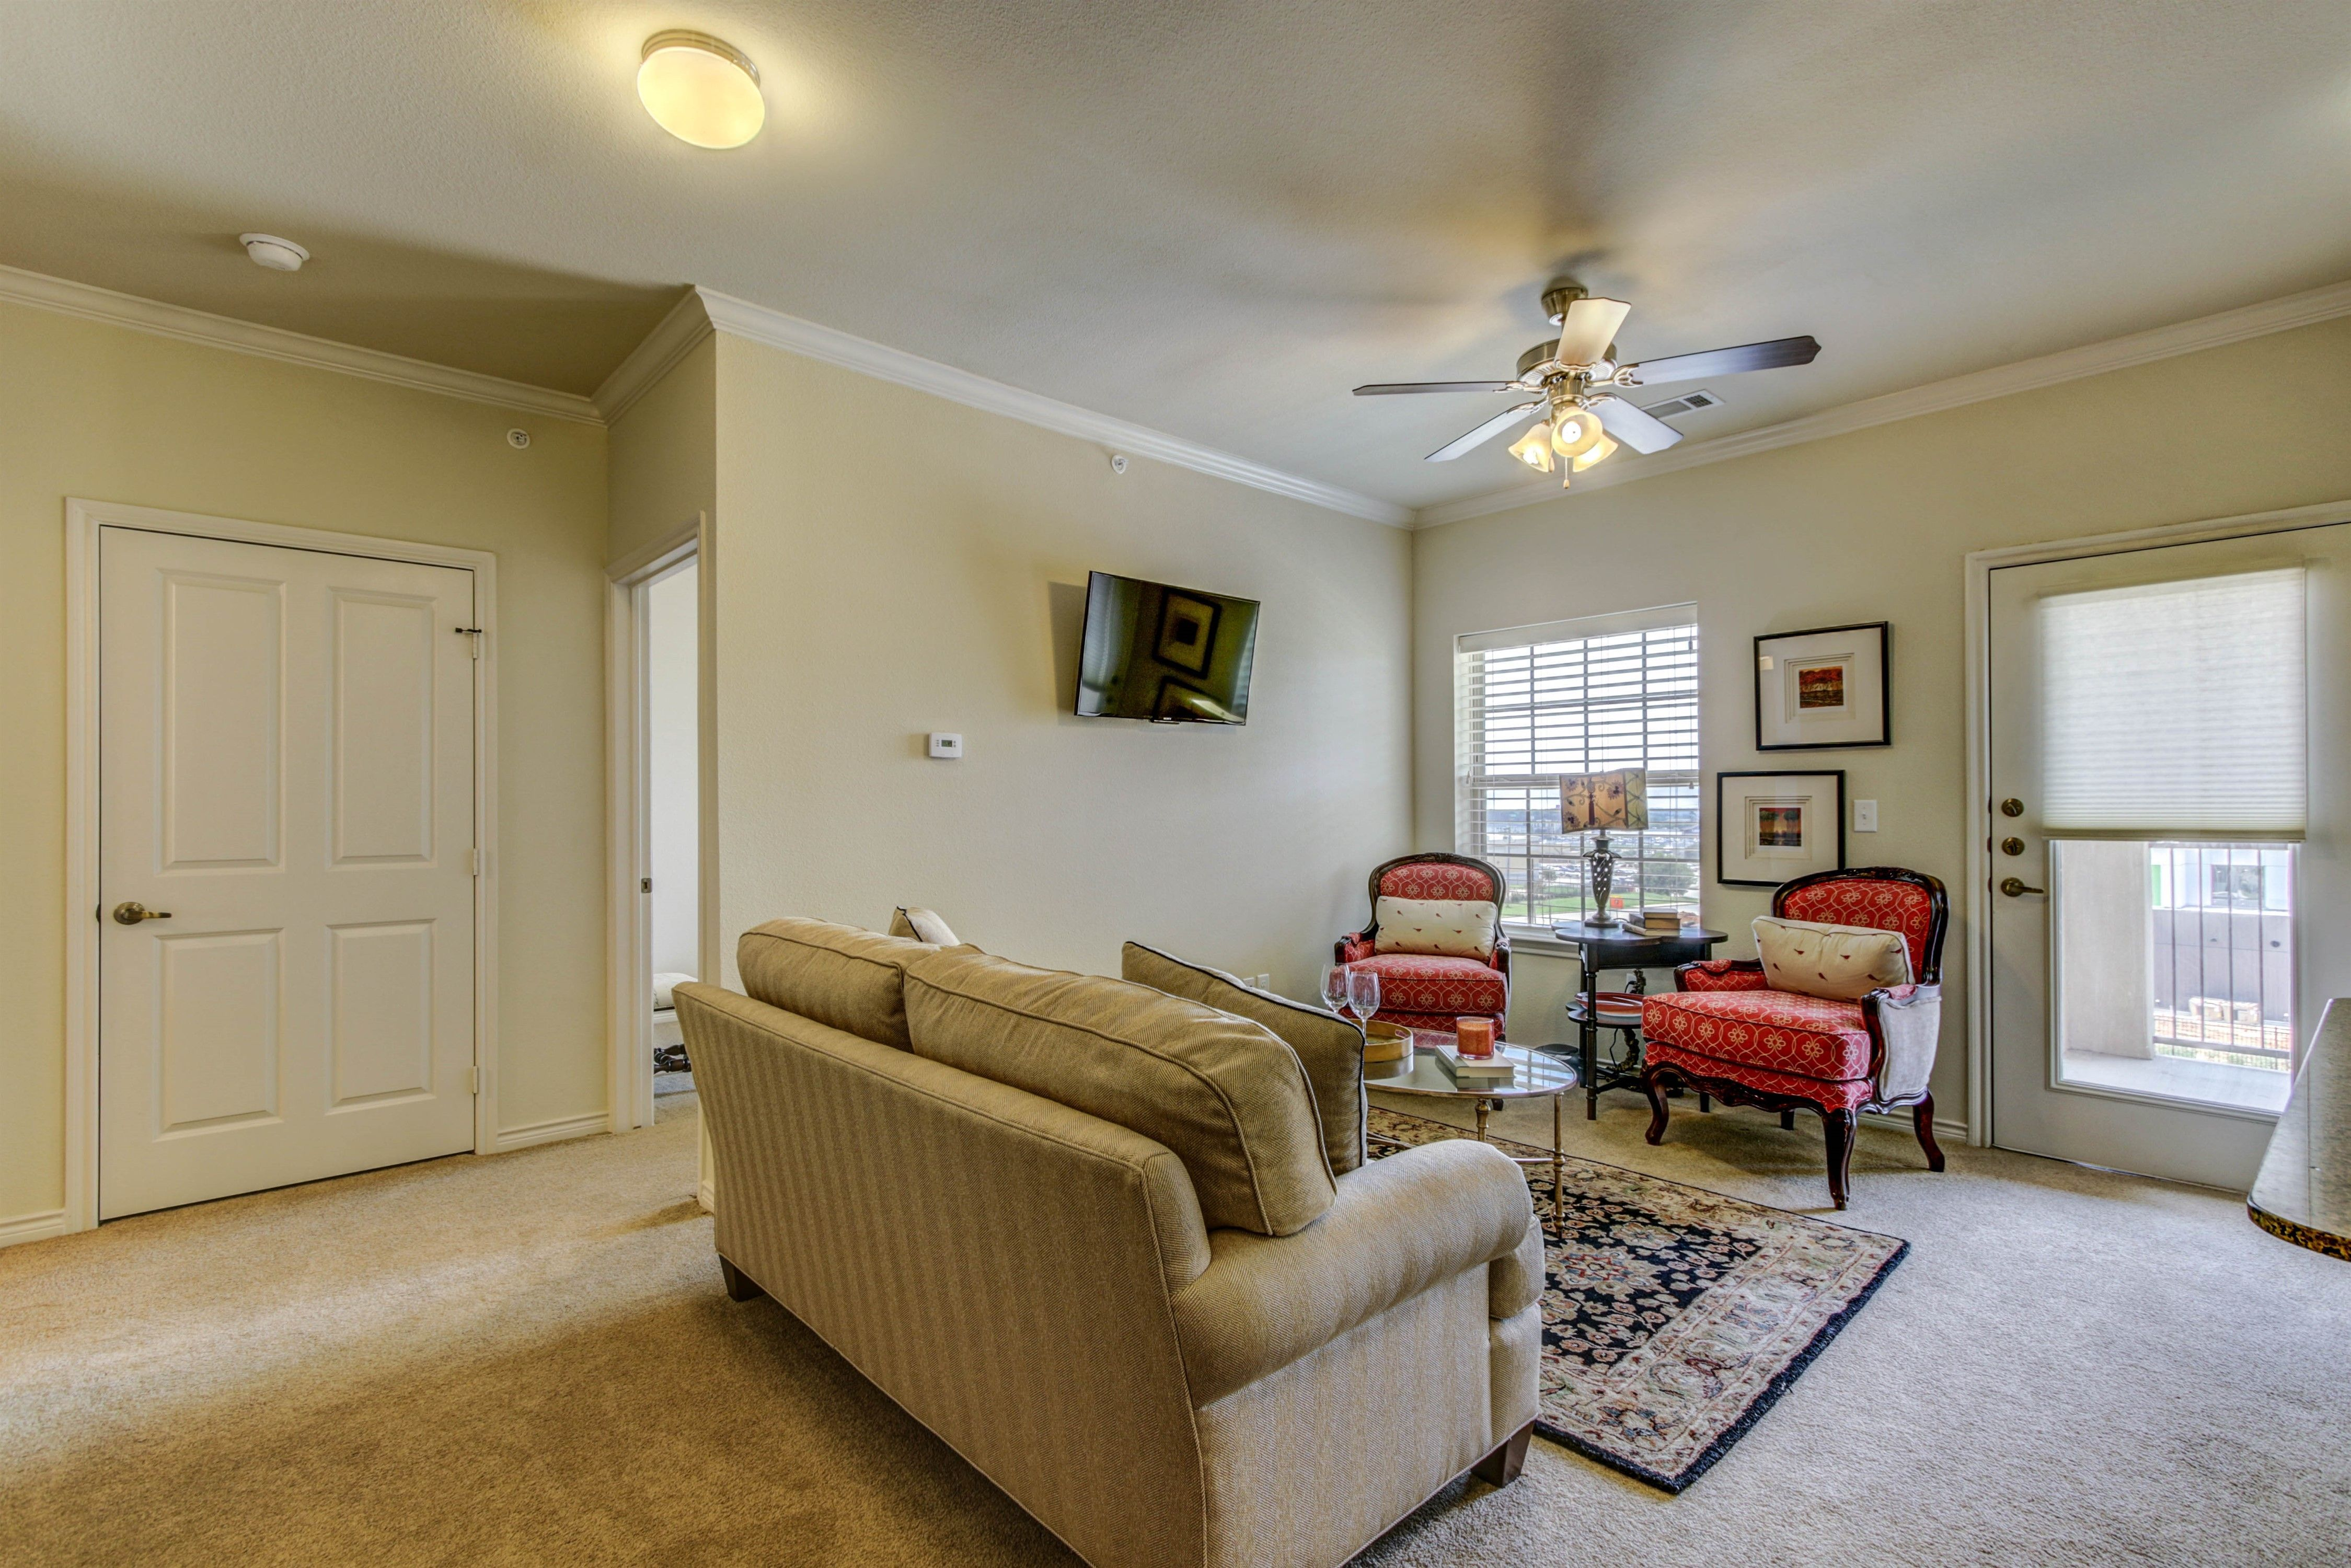 As A Resident Of Arabella You Have Quite A Variety Of Amenities To Enjoy Our Cozy Dining Room Is A Great Dining Room Cozy Senior Living Retirement Community